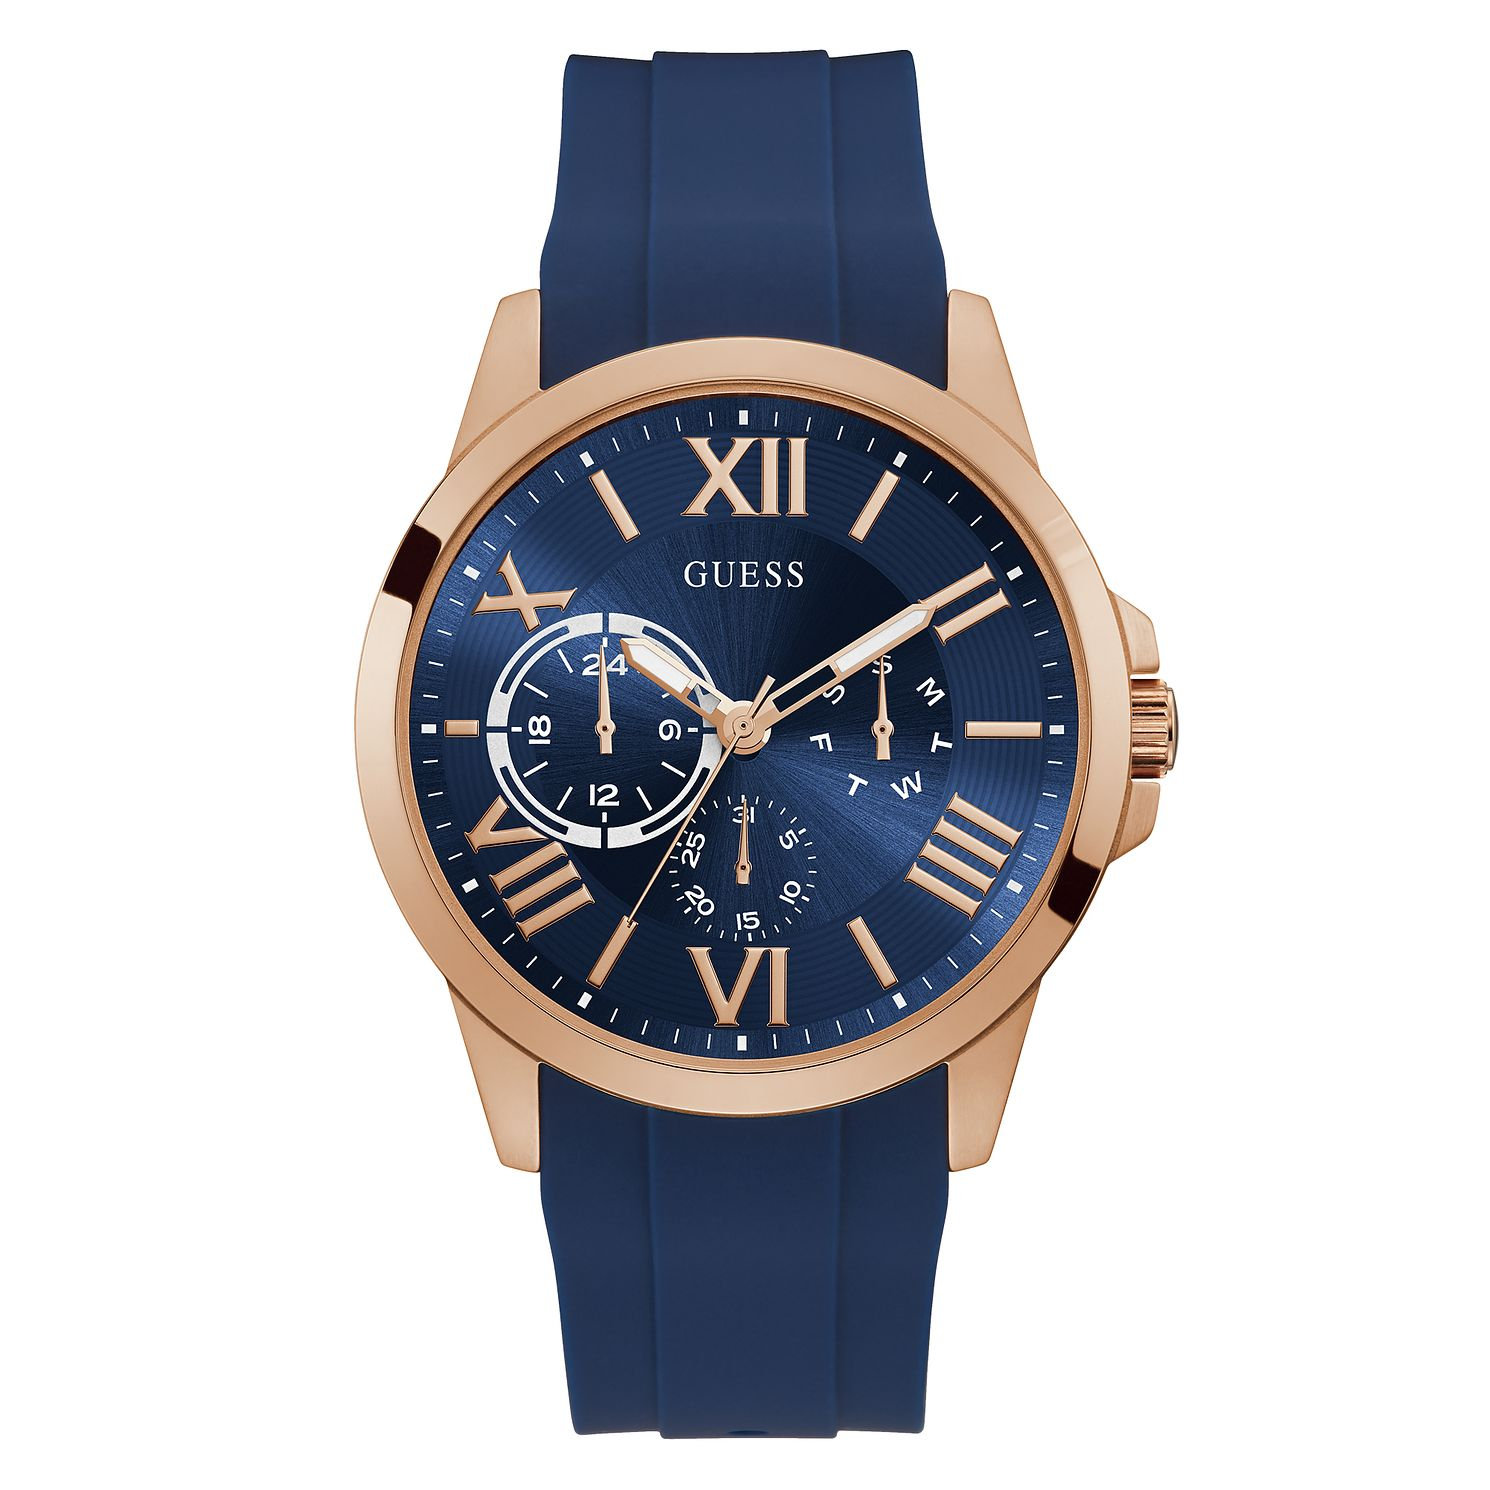 Guess Orbit Men's Blue Silicone Strap Watch - Product number 5191157